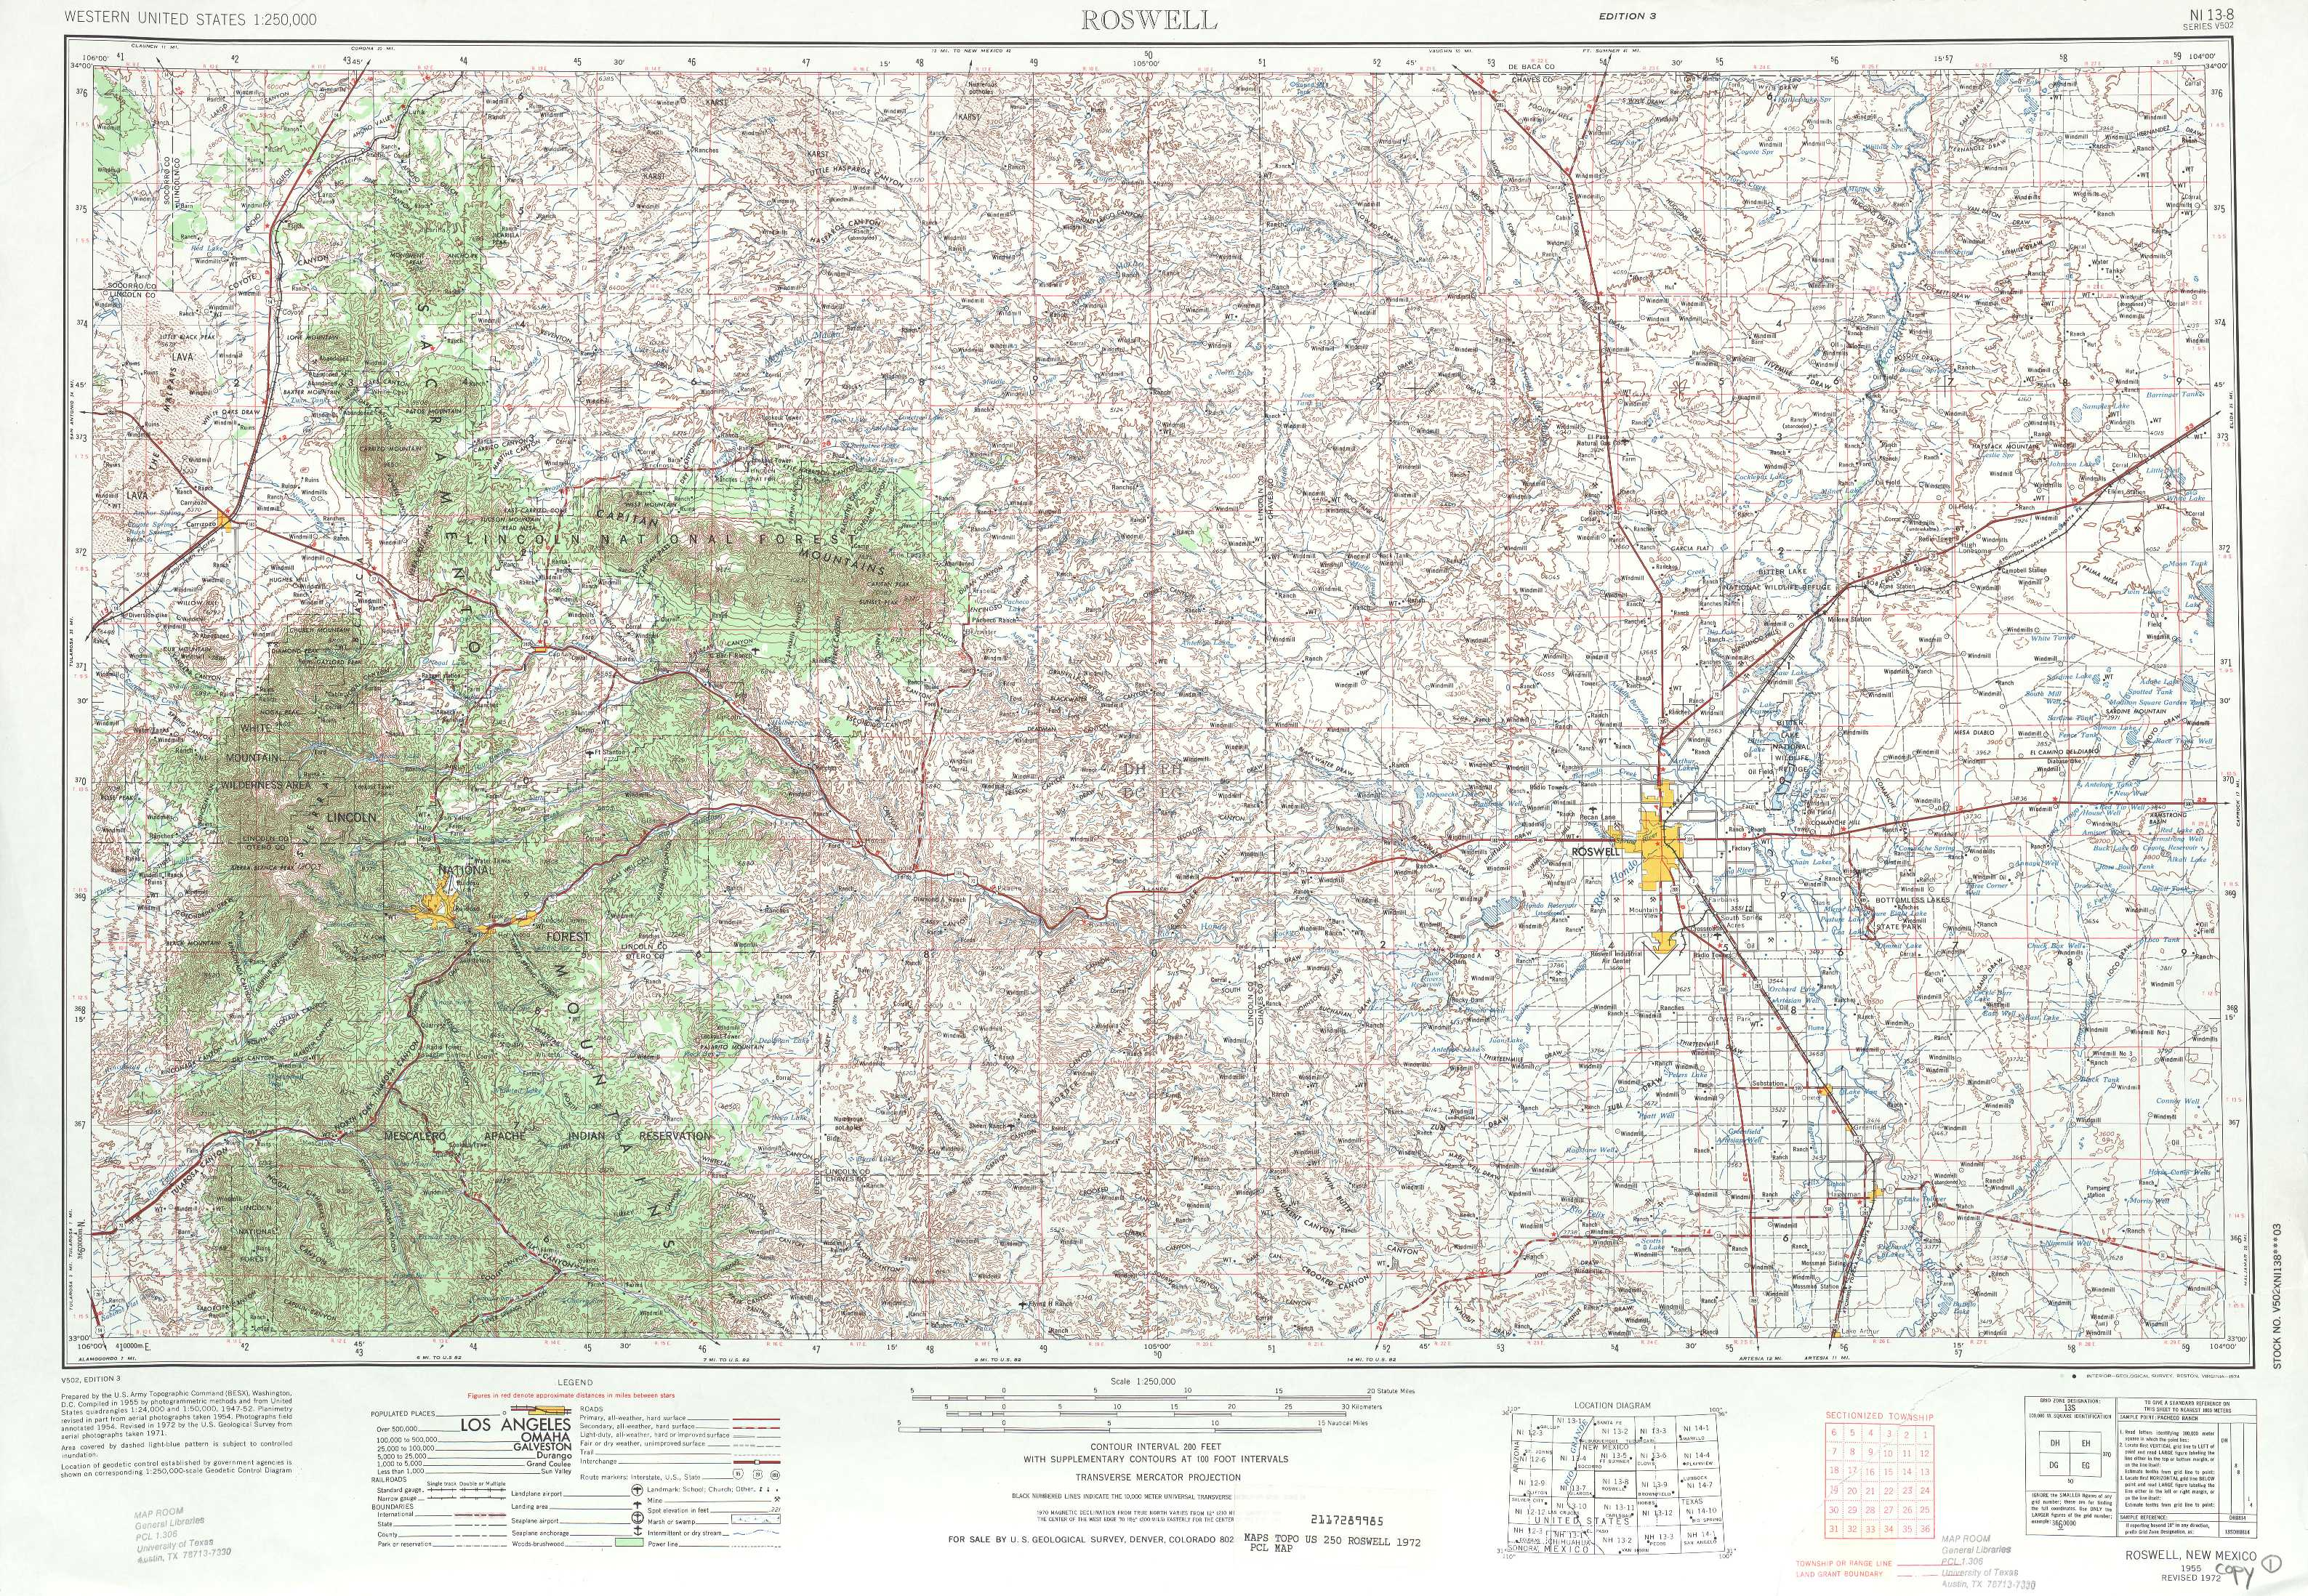 Roswell Topographic Maps NM USGS Topo Quad A At - Us topographic road map